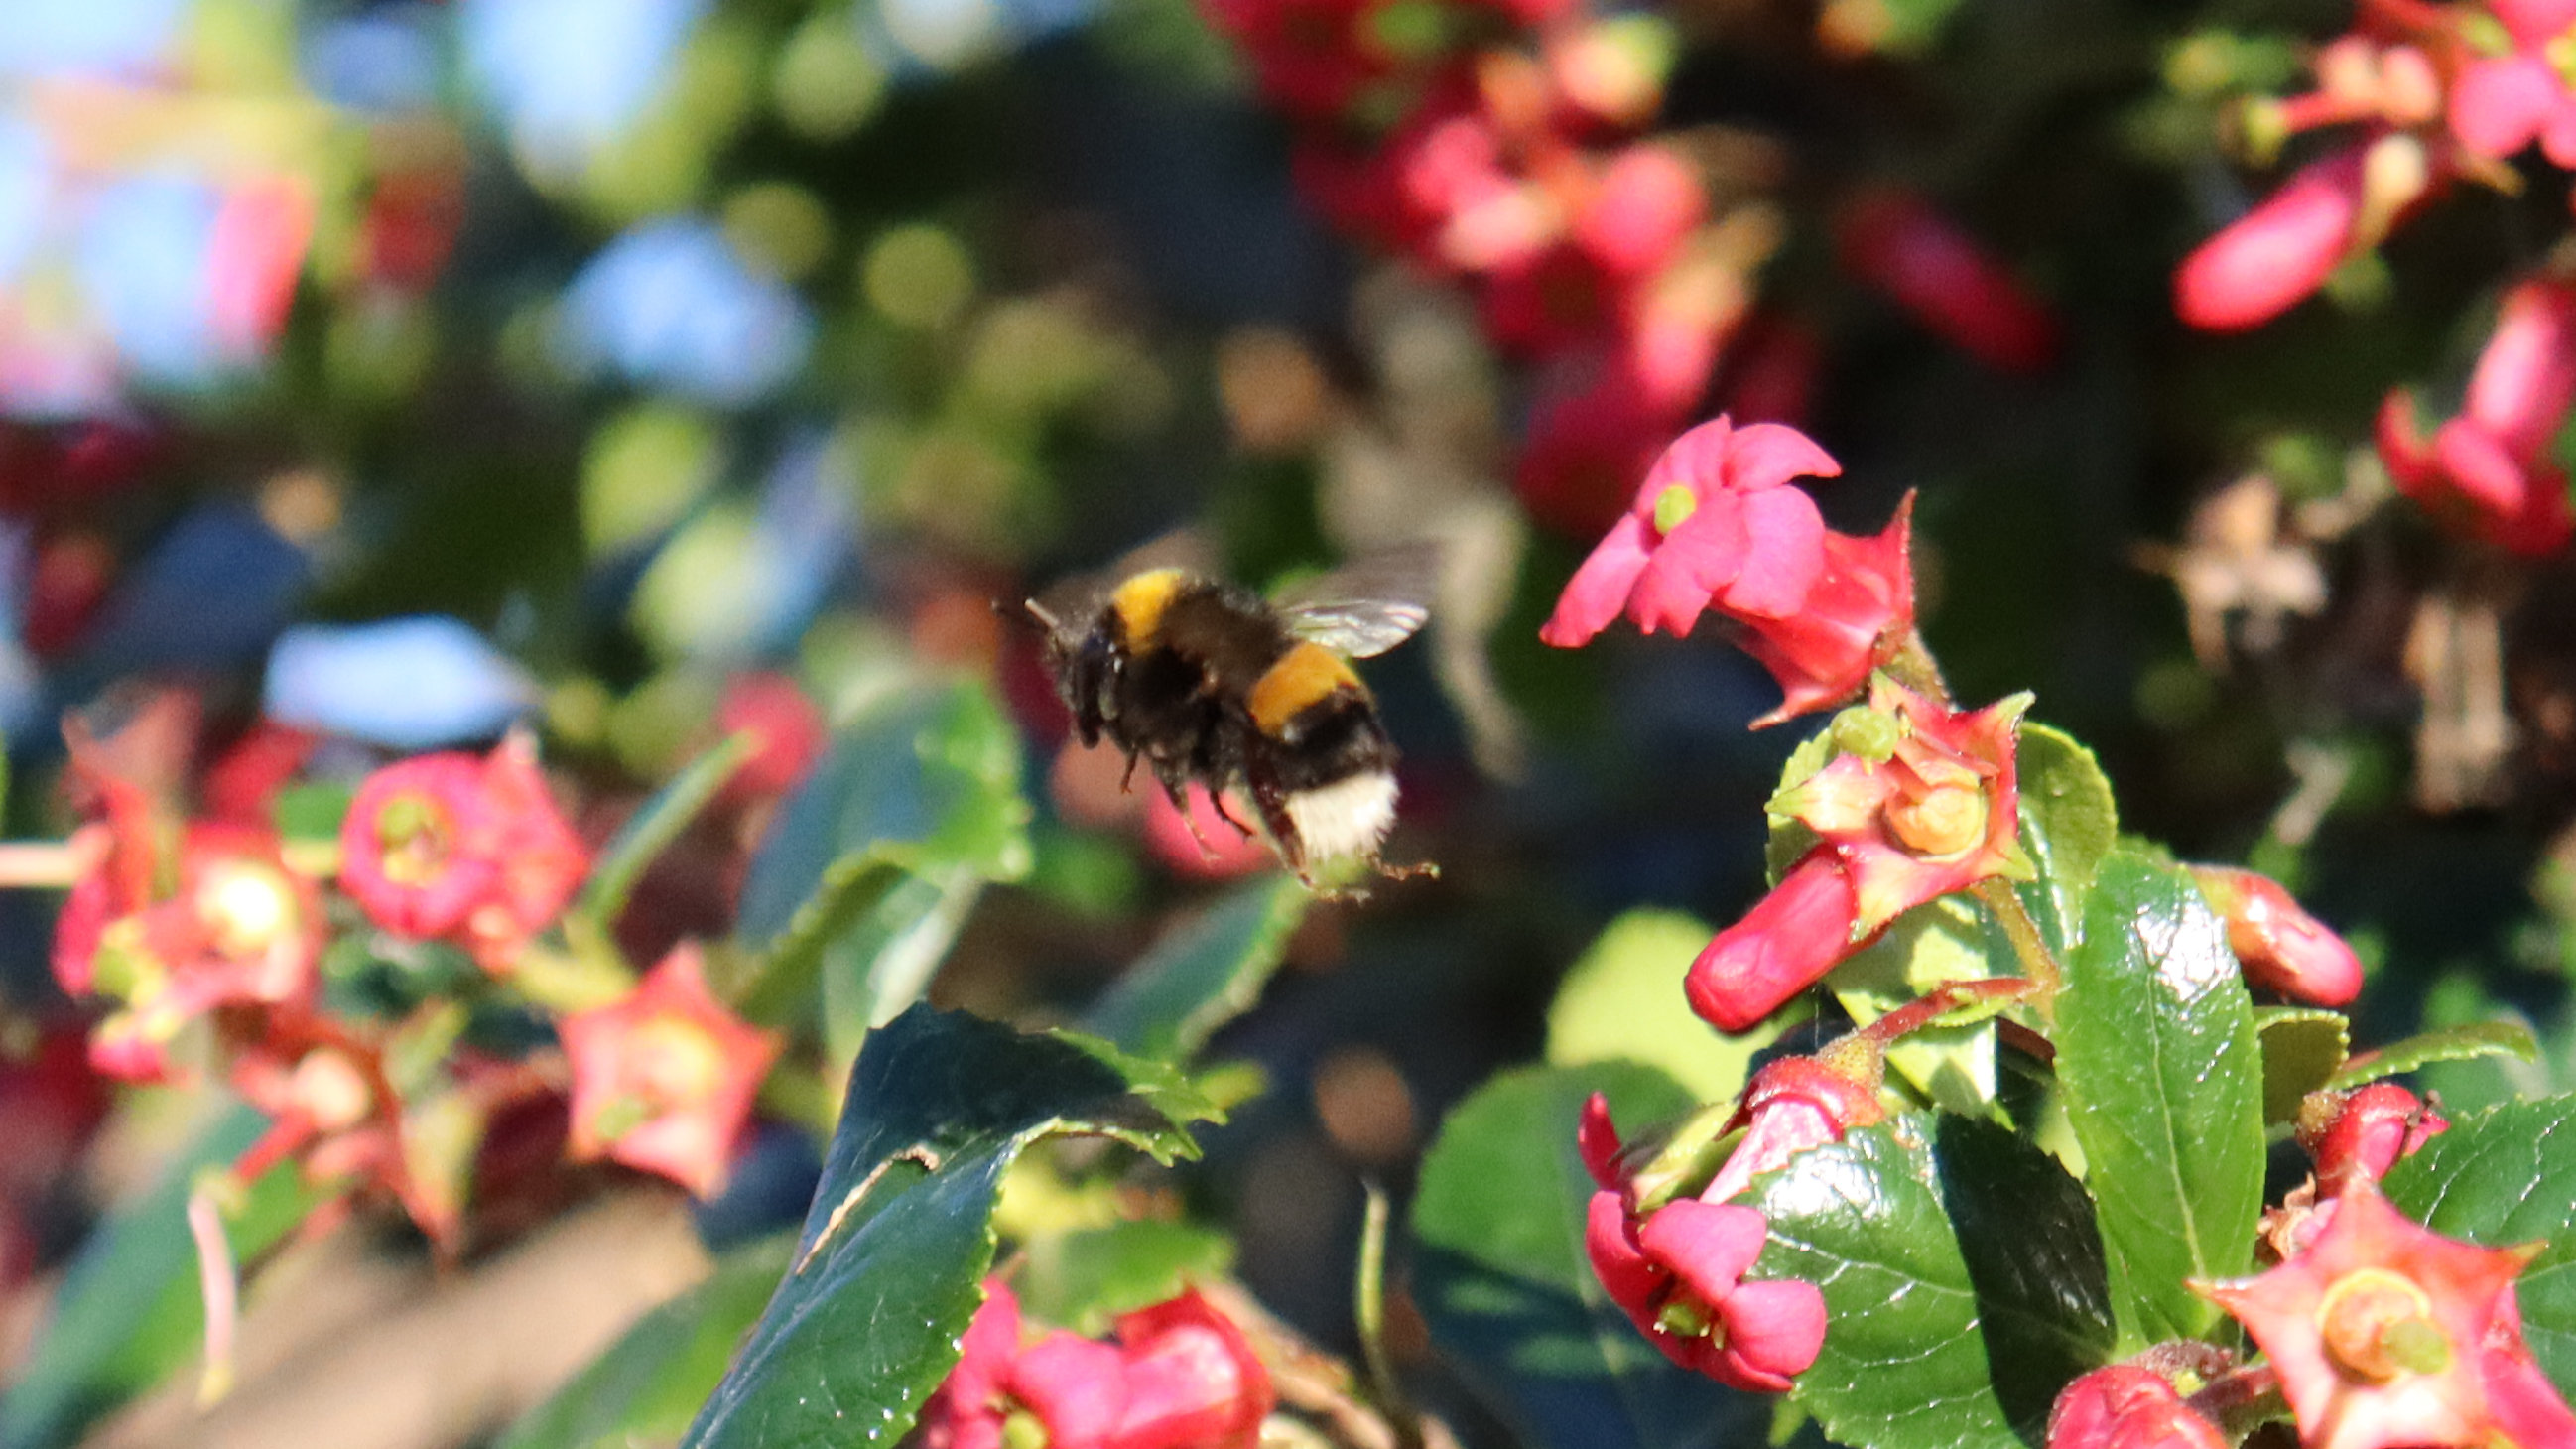 A bee flying away from a group of pink flowers.